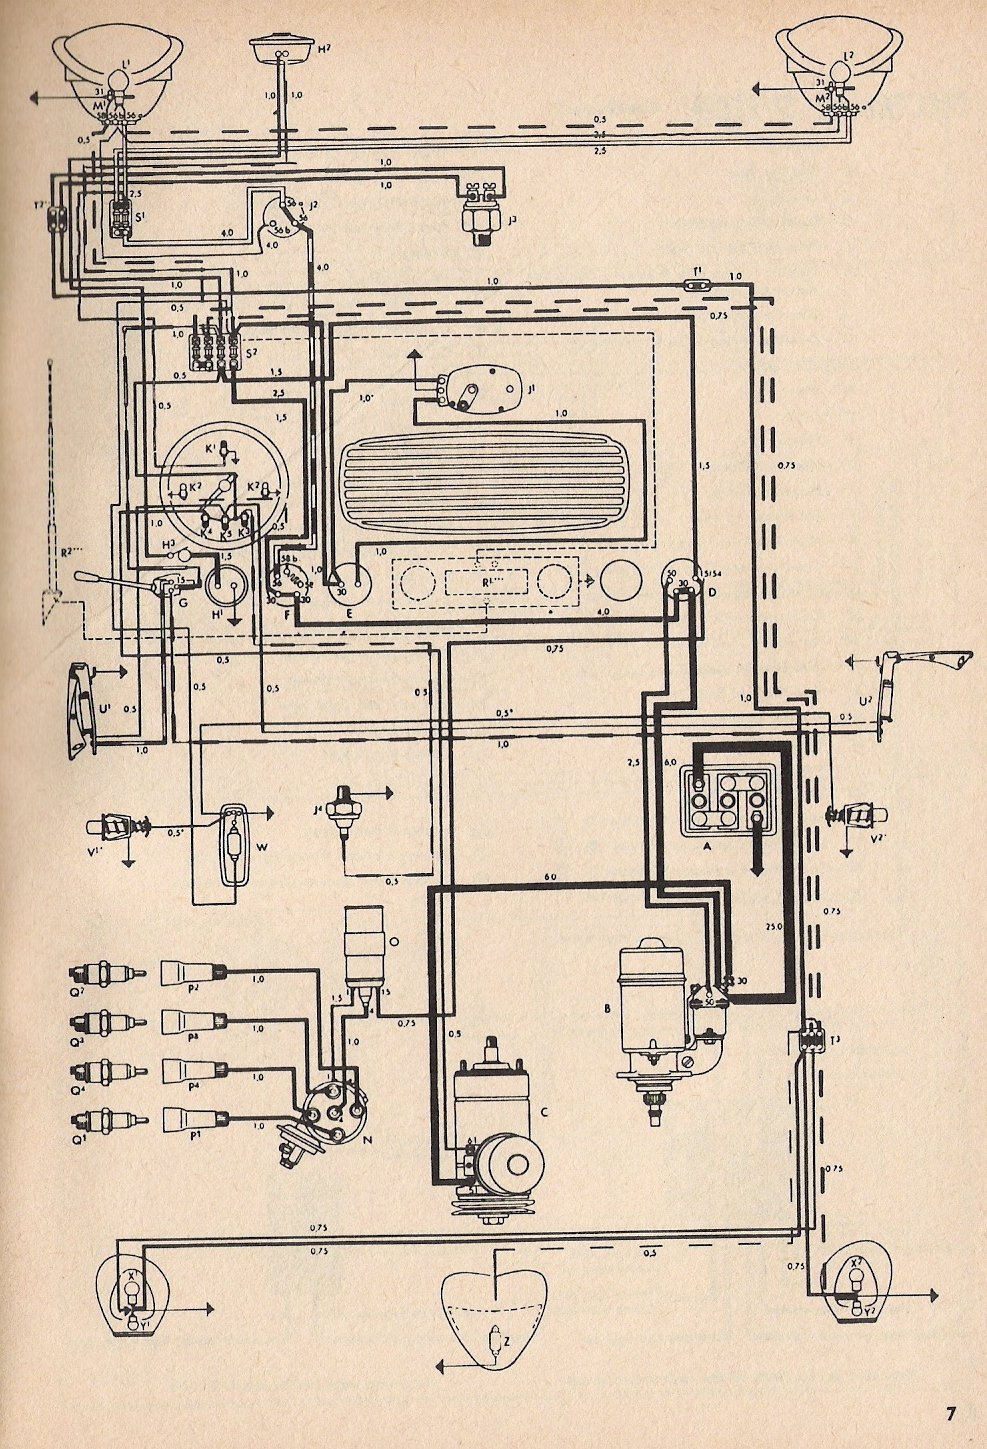 1968 Vw Bug Wiring - Data Wiring Diagrams  Vw Bug Wiring Diagrams on 1972 vw beetle fuse box diagram, 1966 chevrolet impala wiring diagram, 12 volt switch wiring diagram, 1966 chevy impala wiring diagram, vw kit car wiring diagram, 1966 ford wiring diagram, 1965 vw wiring diagram, 1966 porsche wiring diagram, 67 vw wiring diagram, 1972 vw beetle engine diagram, 69 beetle wiring diagram, vw engine wiring diagram, 1966 mustang wiring diagram, 1968 vw beetle engine diagram, vw beetle wiring diagram, classic beetle wiring diagram, 1966 pontiac gto wiring diagram, 1966 corvette wiring diagram, 1974 super beetle wiring diagram, 1956 vw wiring diagram,